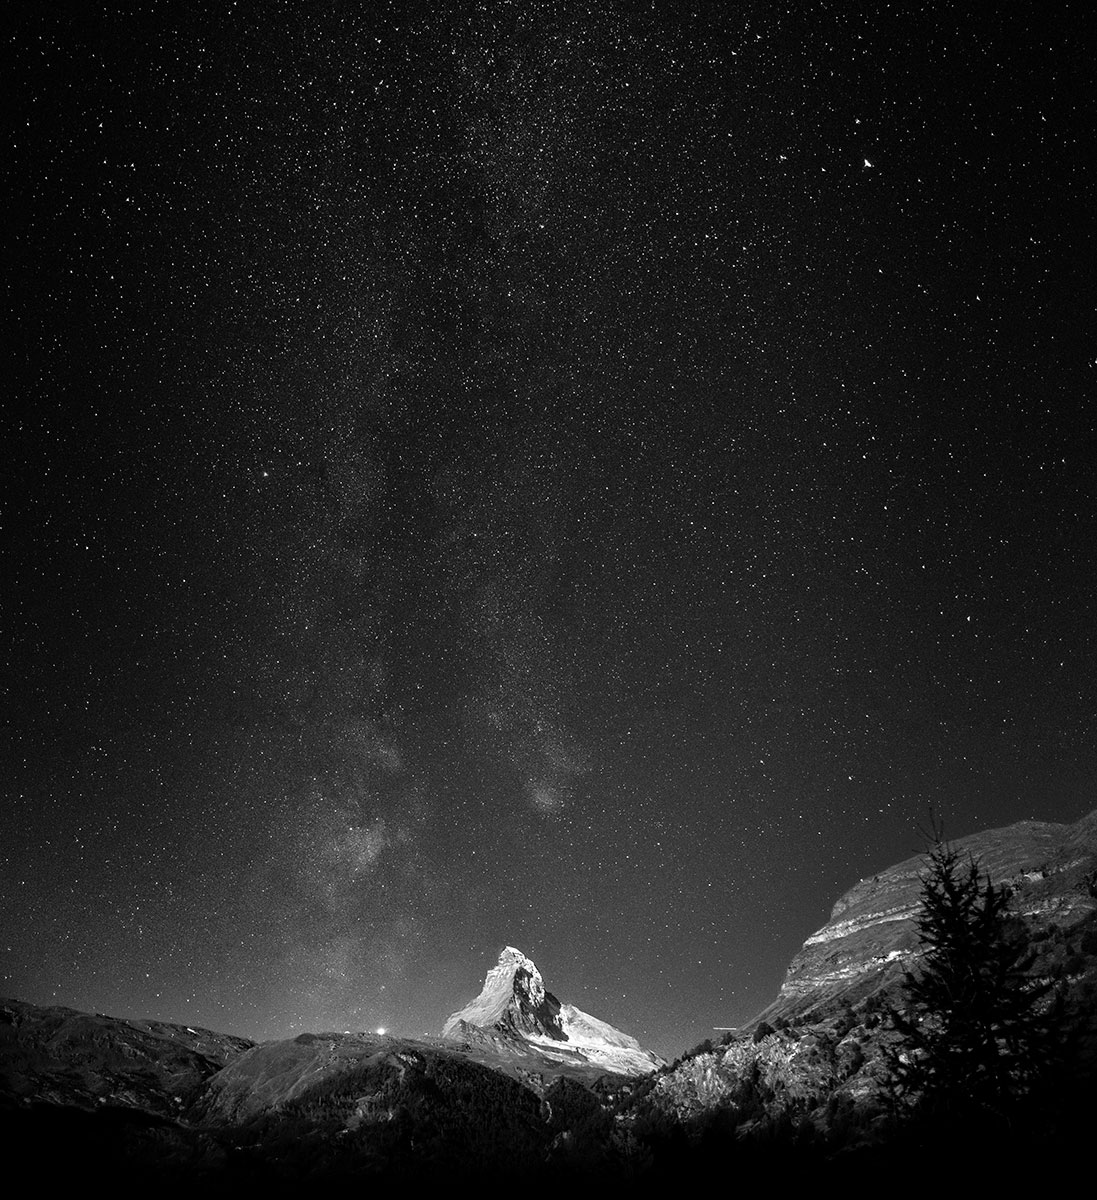 The milky way galaxy dwarfs the 4478m high mountain, the Matterhorn, during a late september night shoot